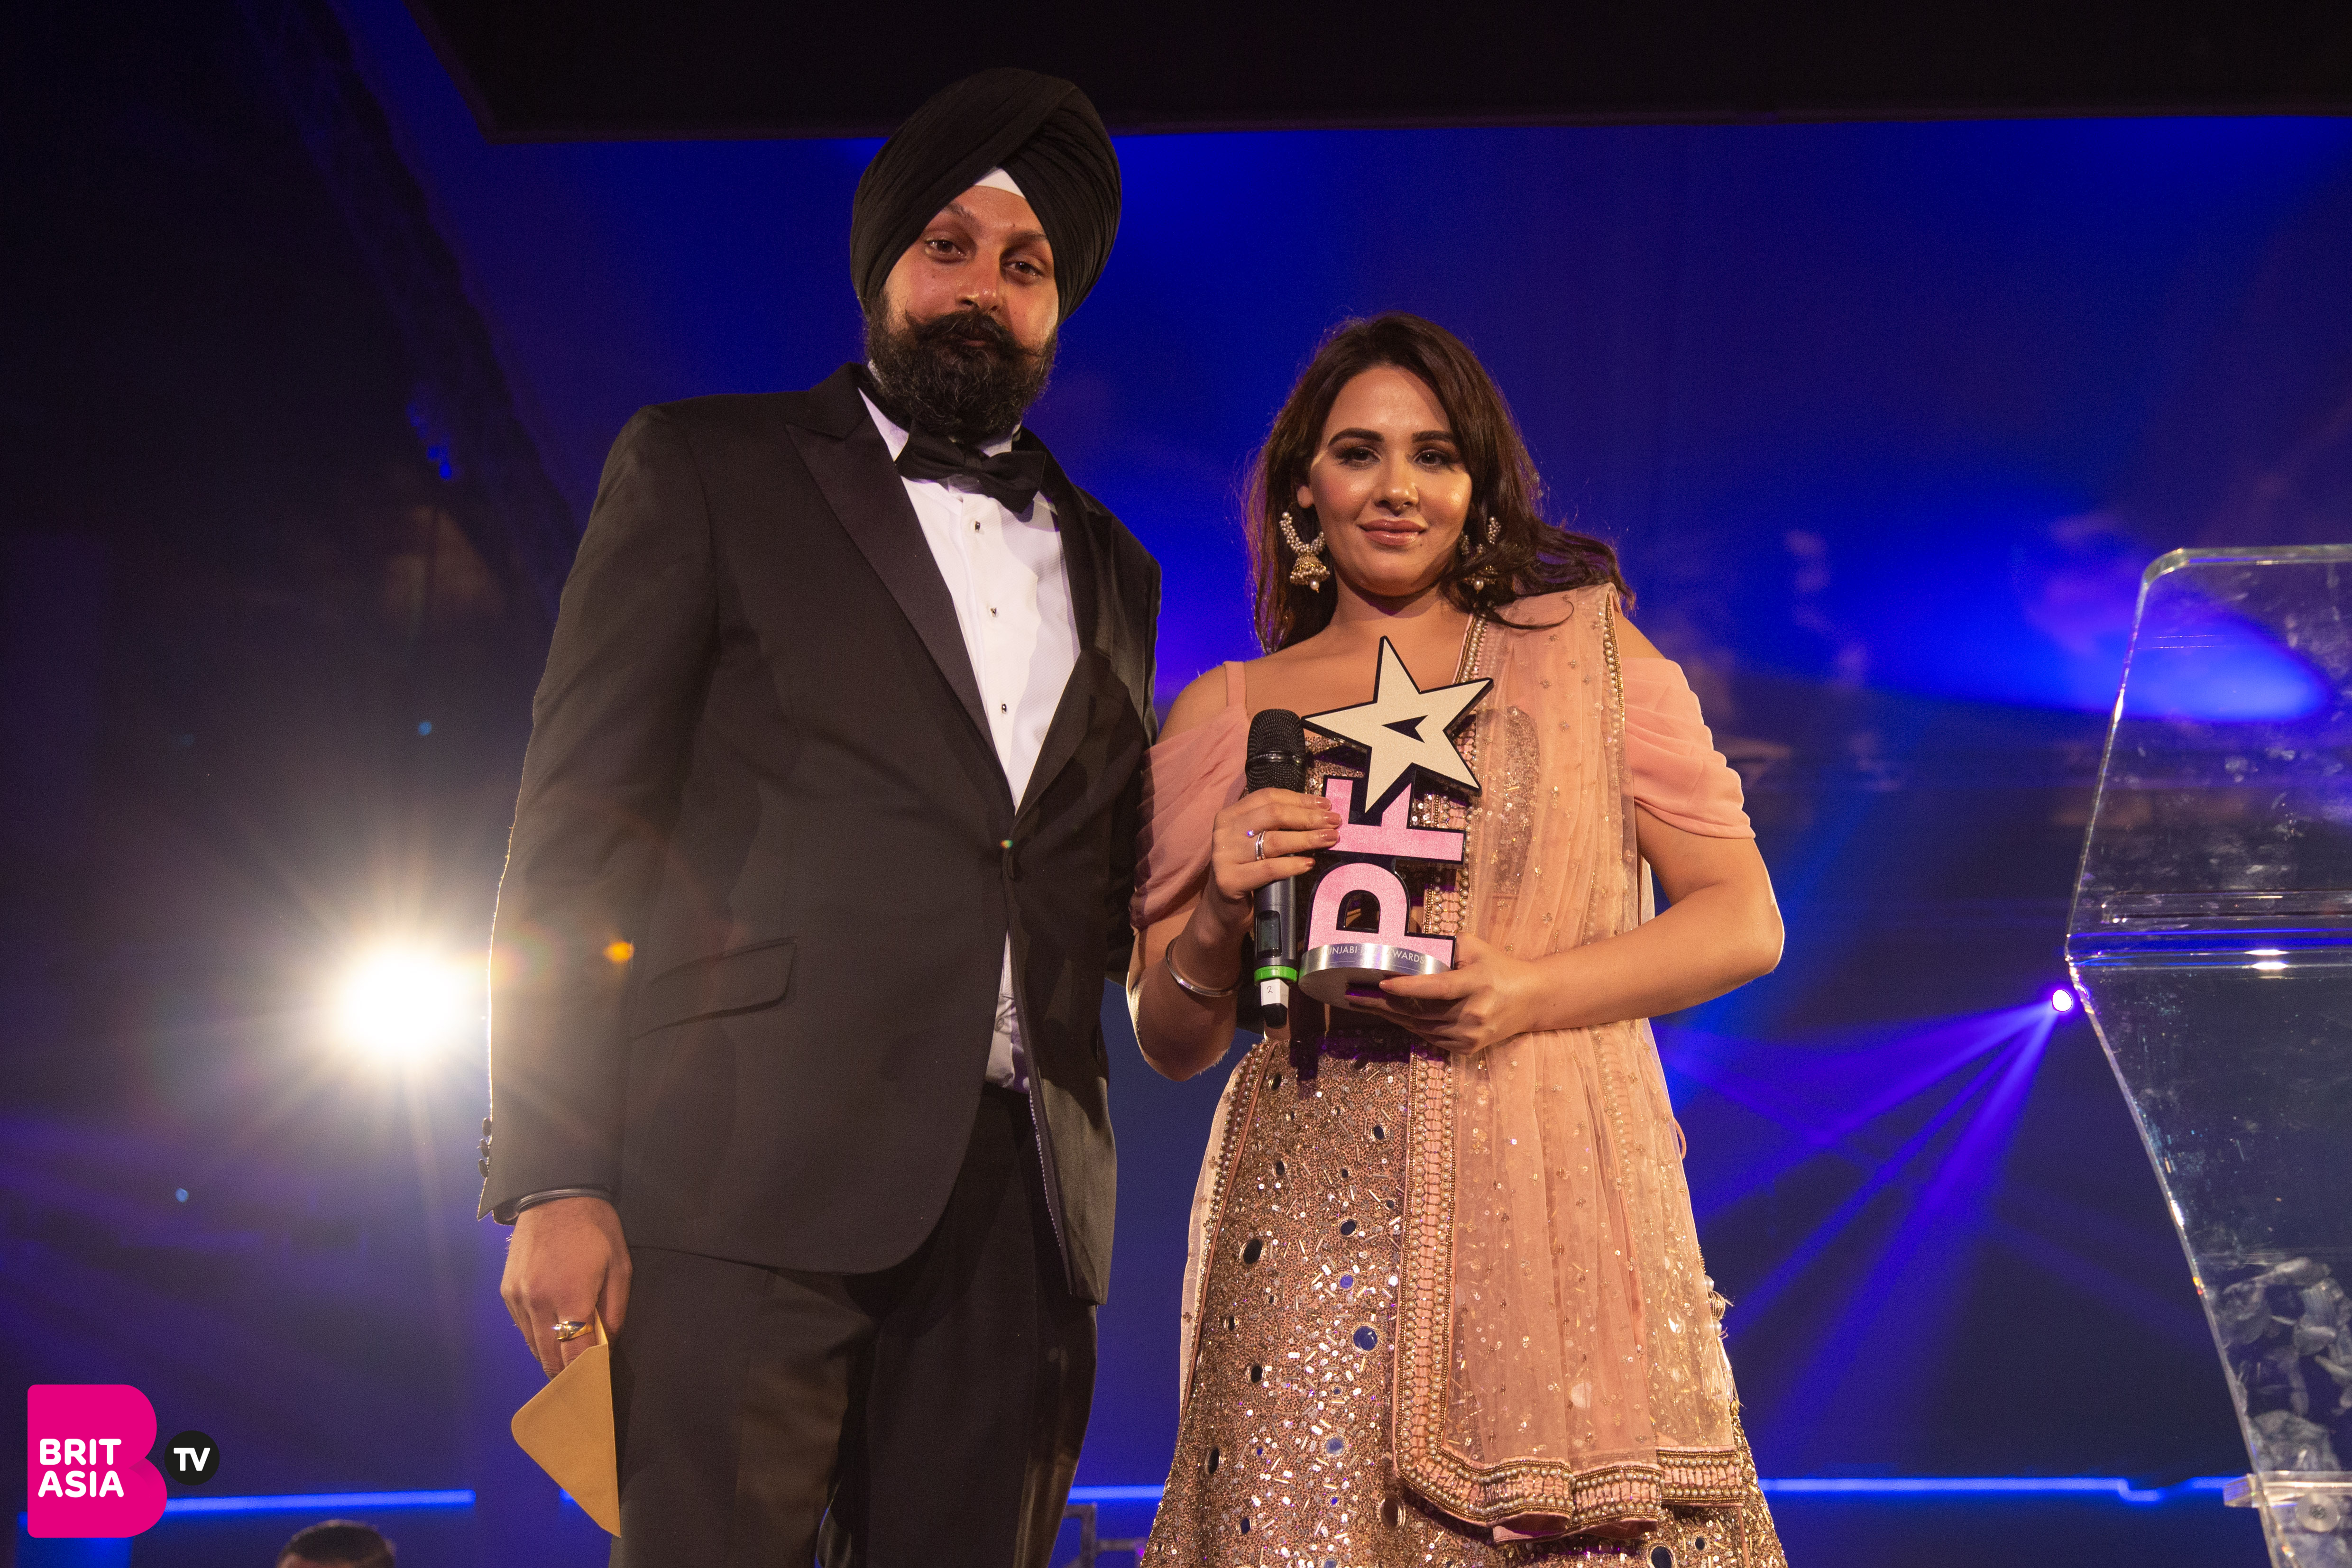 Jasmine Sandlas with the PFA Award